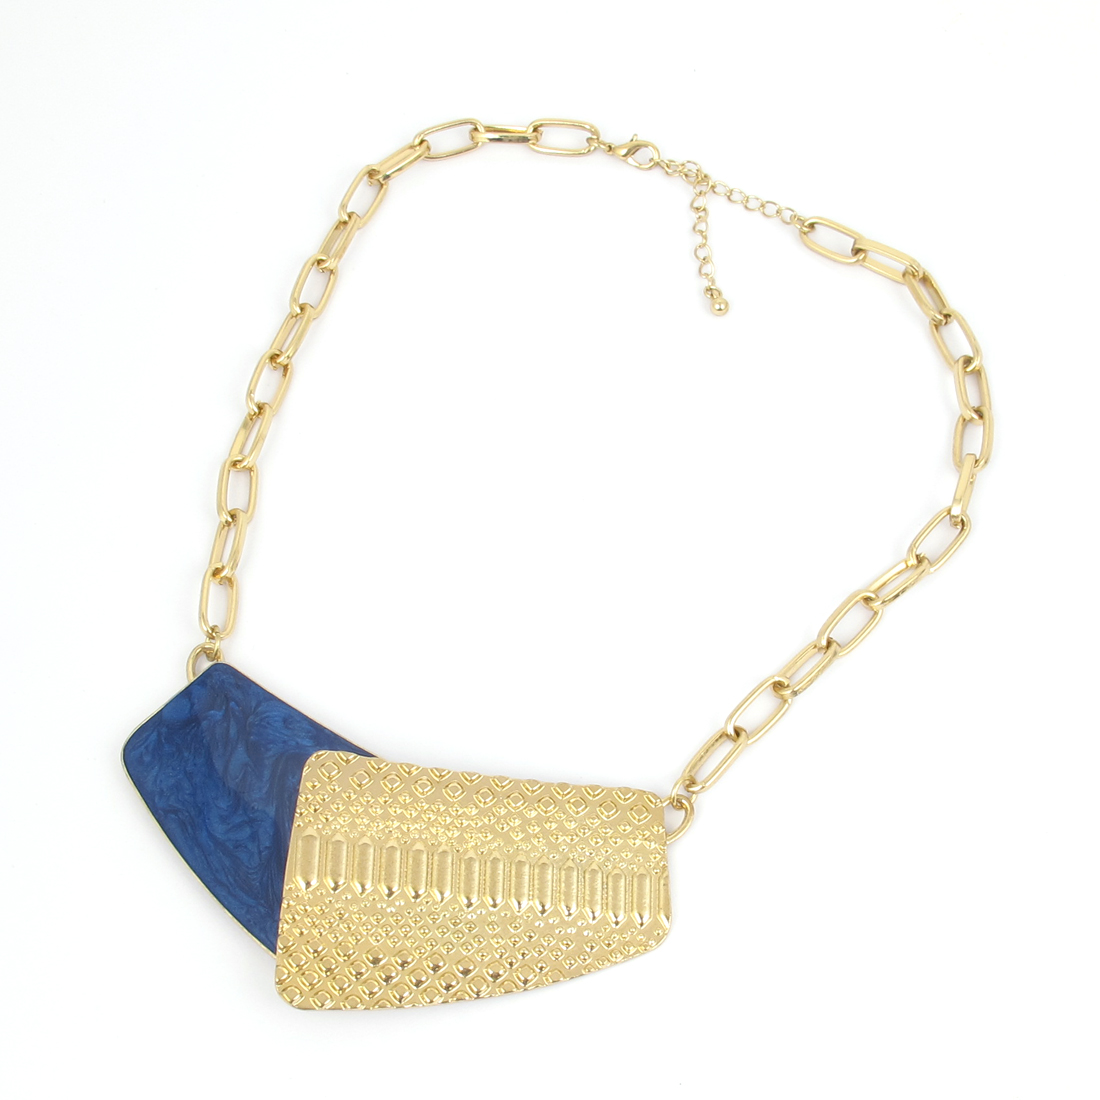 Ladies Women Metal Lobster Buckle Strip Link Chain Necklace Neckwear Collar Gold Tone Dark Blue